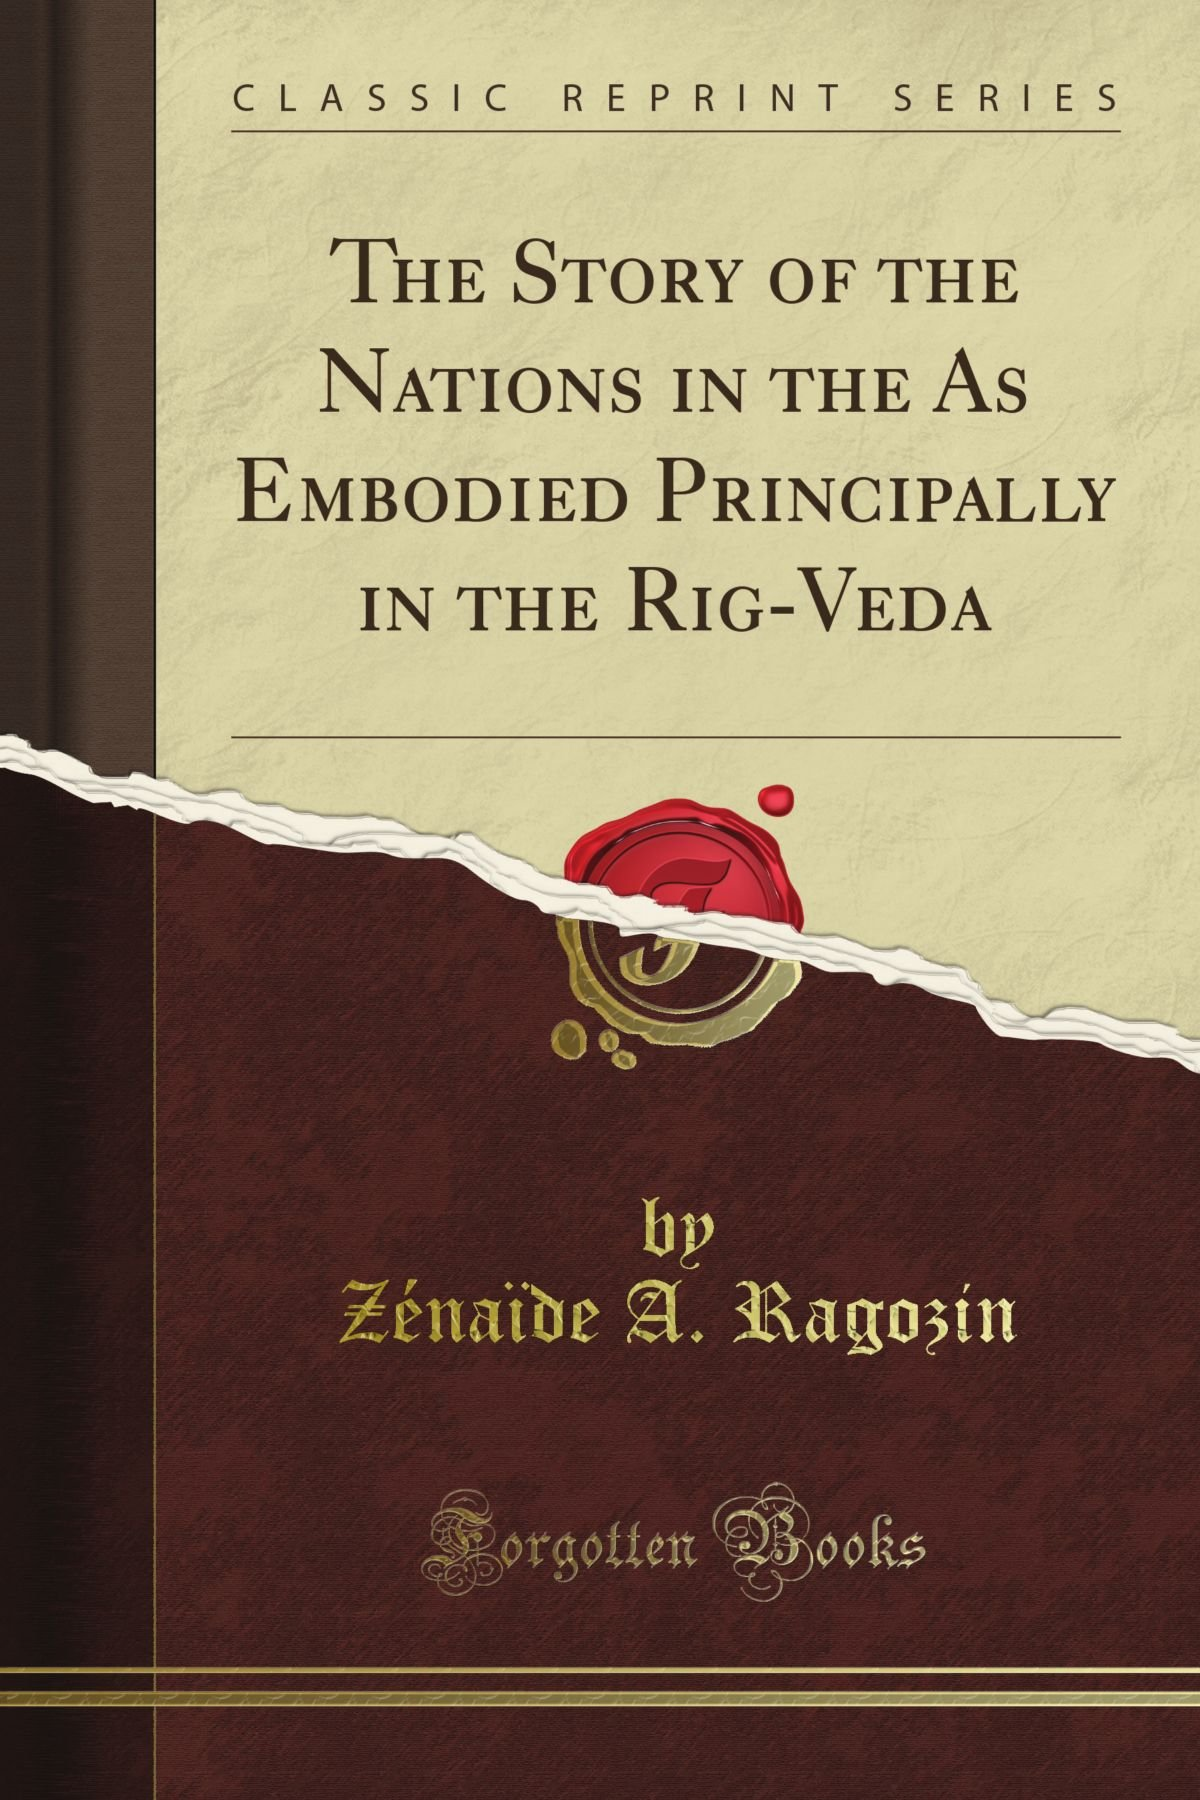 Download The Story of the Nations in the As Embodied Principally in the Rig-Veda (Classic Reprint) ebook